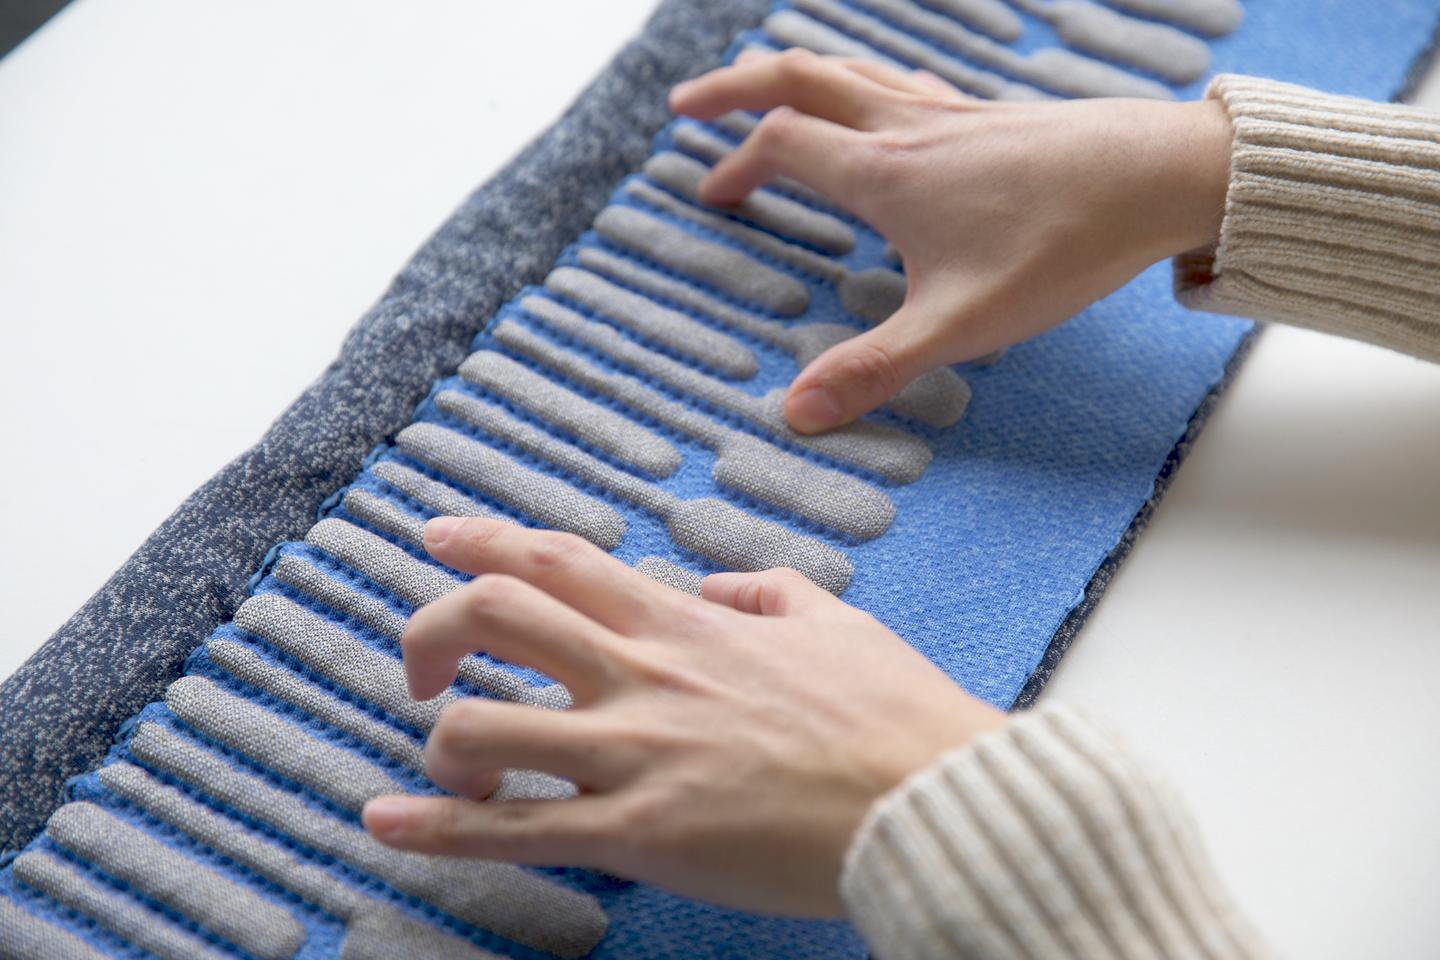 The KnittedKeyboard II can sense physical contact and gestures in the air